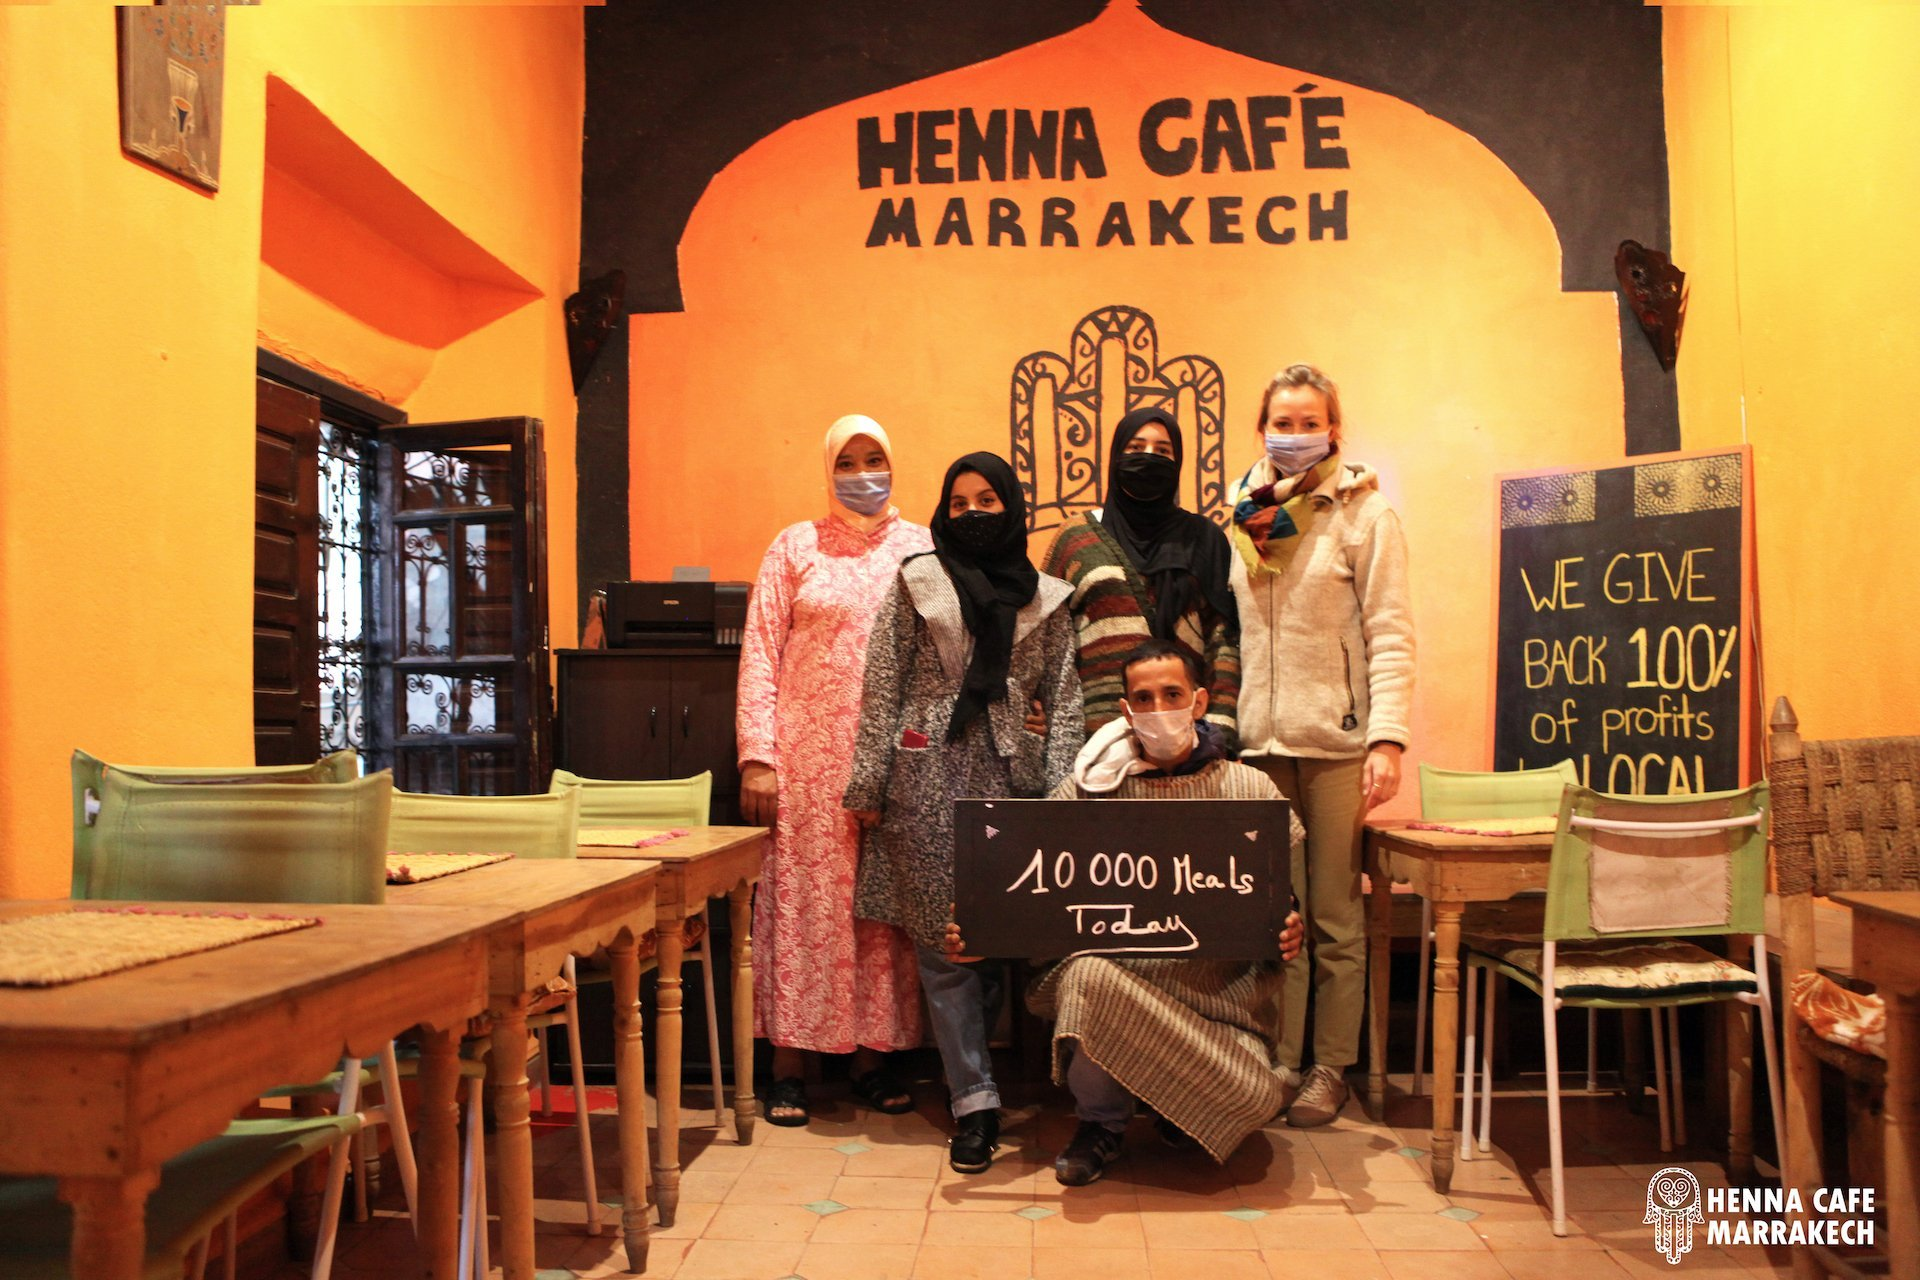 hennacafe 10000 meals today (4)